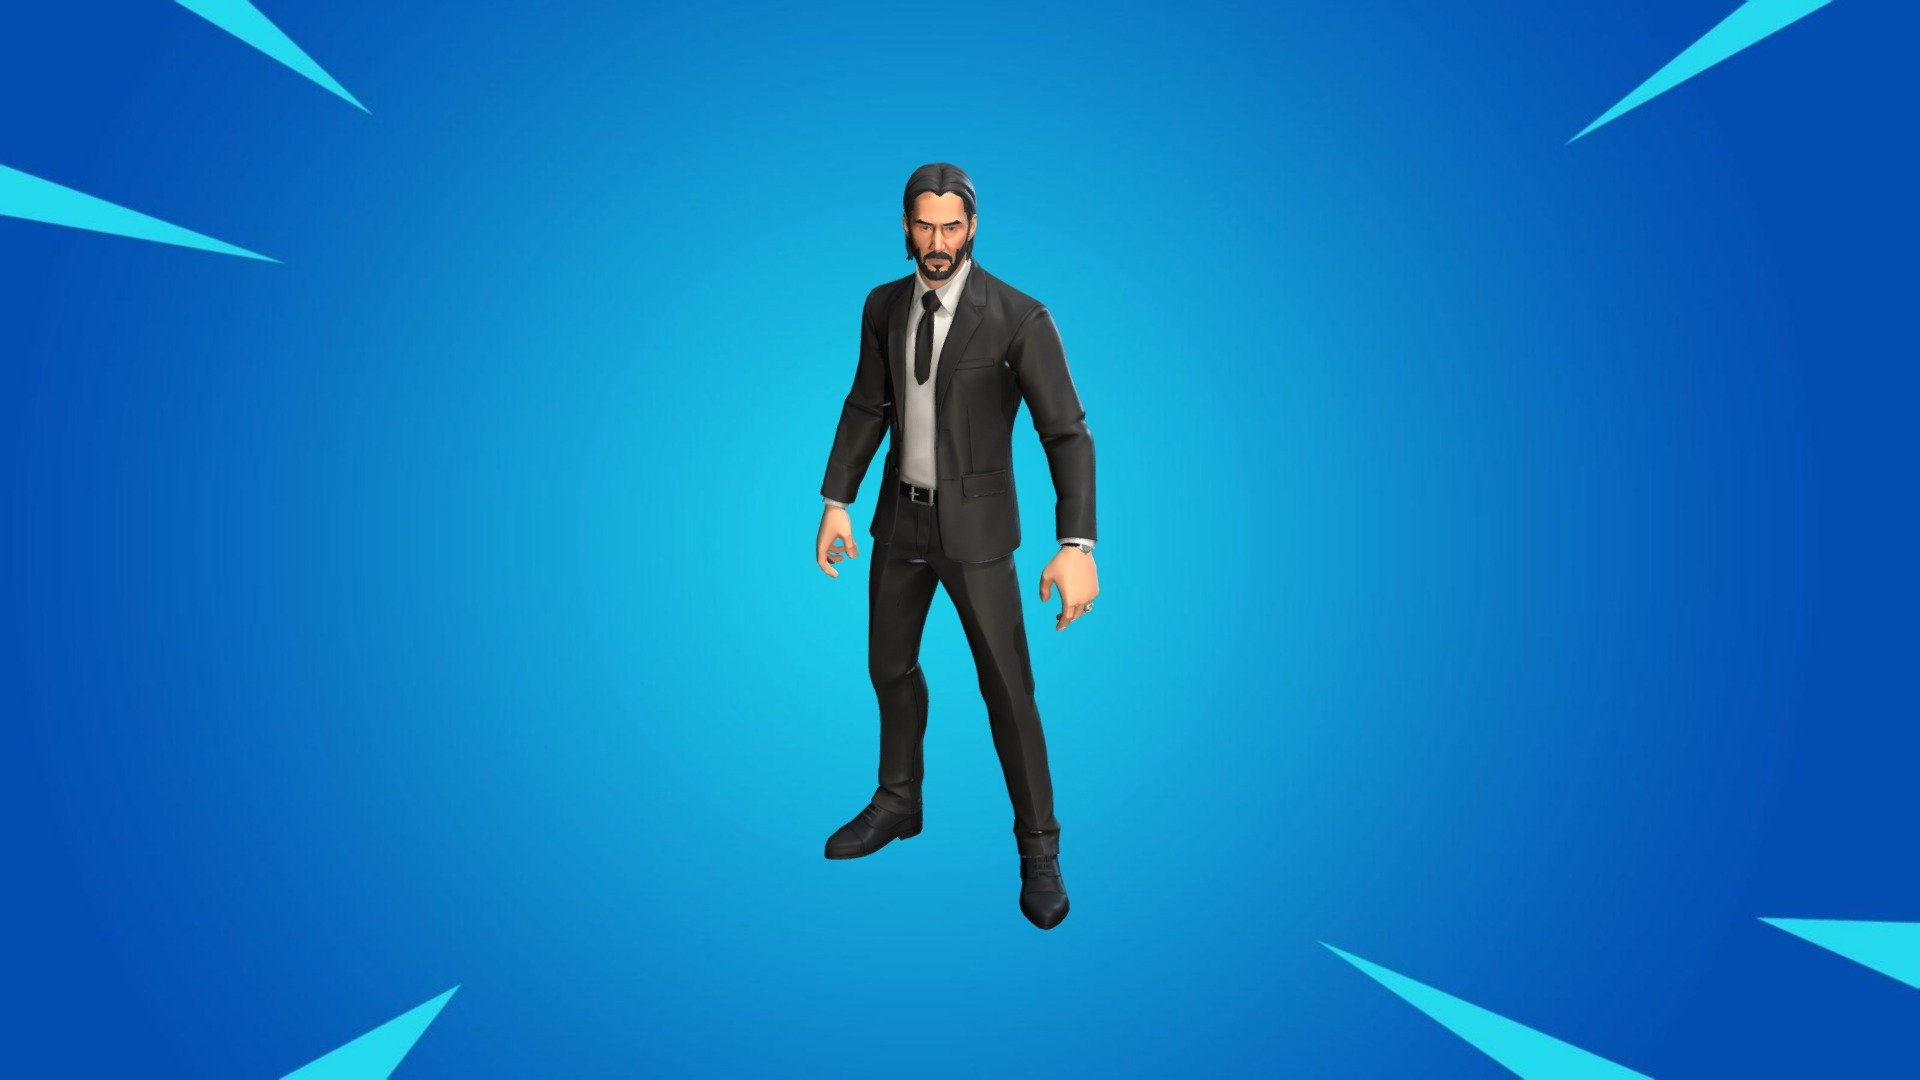 Fortnite John Wick 3d Model By Skin Tracker Stairwave 218b1d9 Sketchfab This john wick set includes the new outfit, as seen below, along with the simple sledge pickaxe, new back bling and assassin another look at the brand new john wick skin in fortnite battle royale. fortnite john wick 3d model by skin